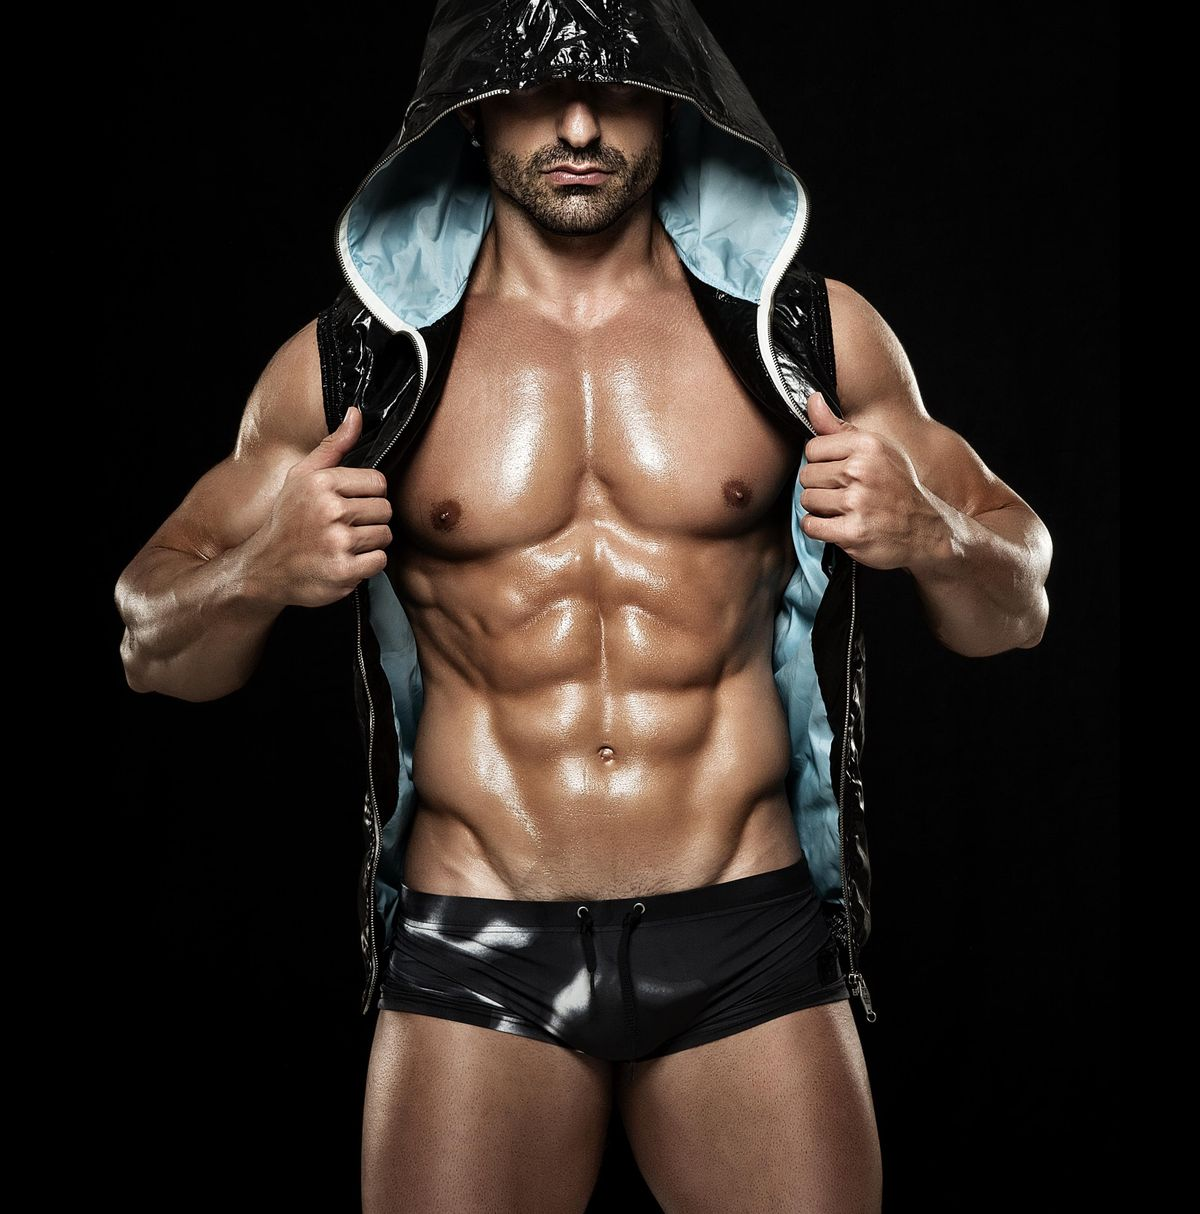 Hunk-O-Mania Male Revue Strip Show - Hollywood Los Angeles | Event in Hollywood | AllEvents.in